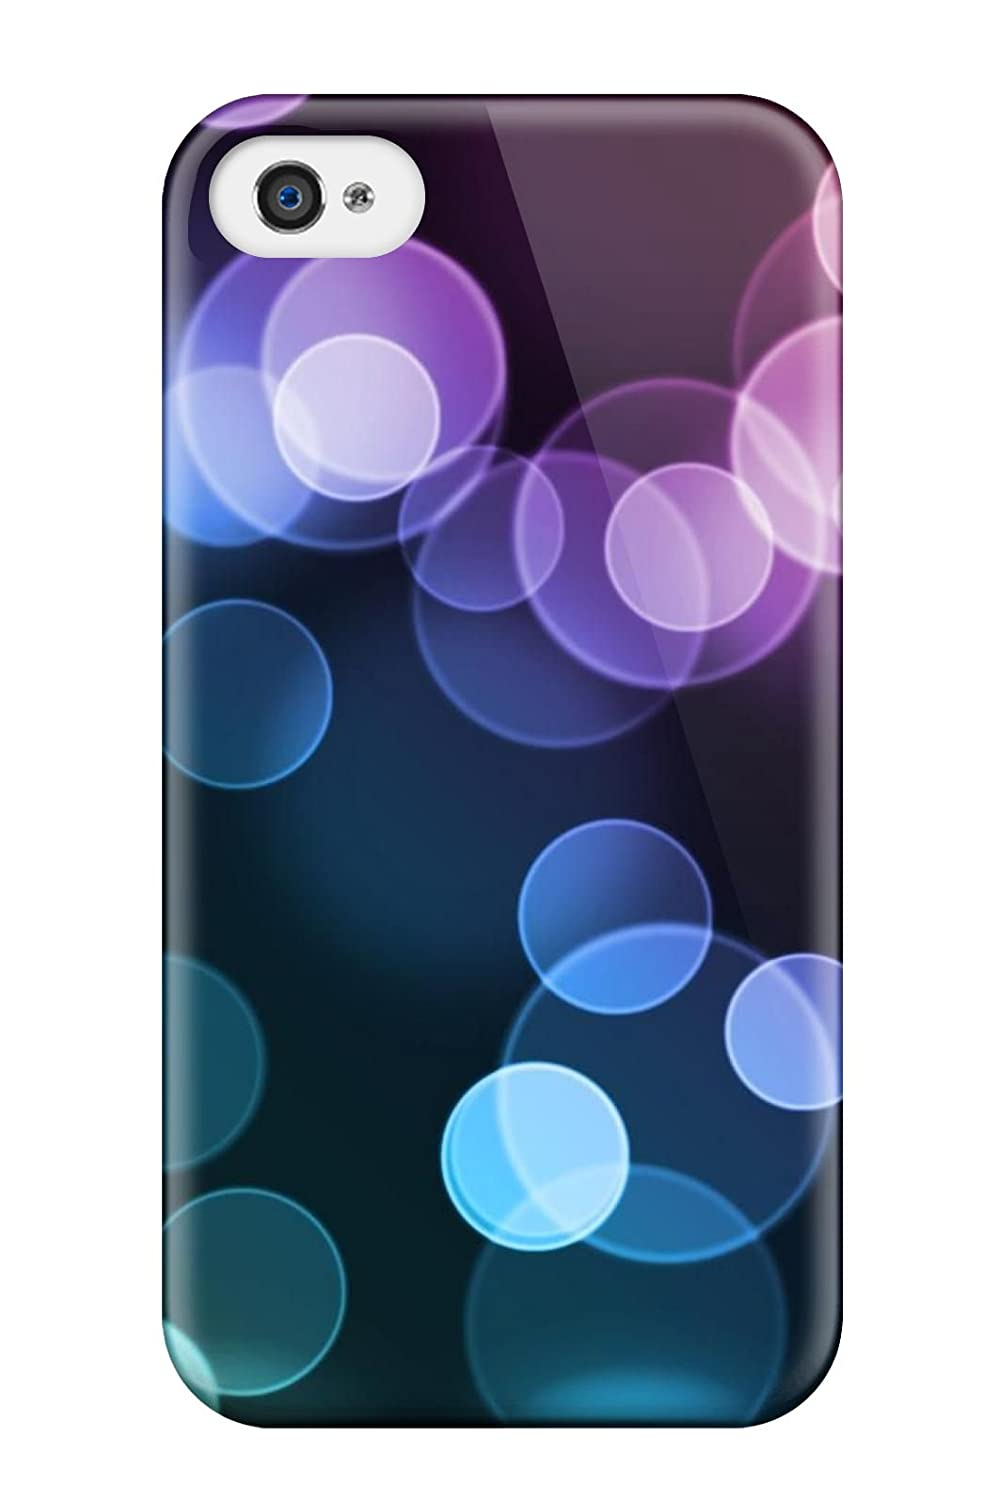 Special Design Back Bokeh Png Phone Case Cover For Iphone 4